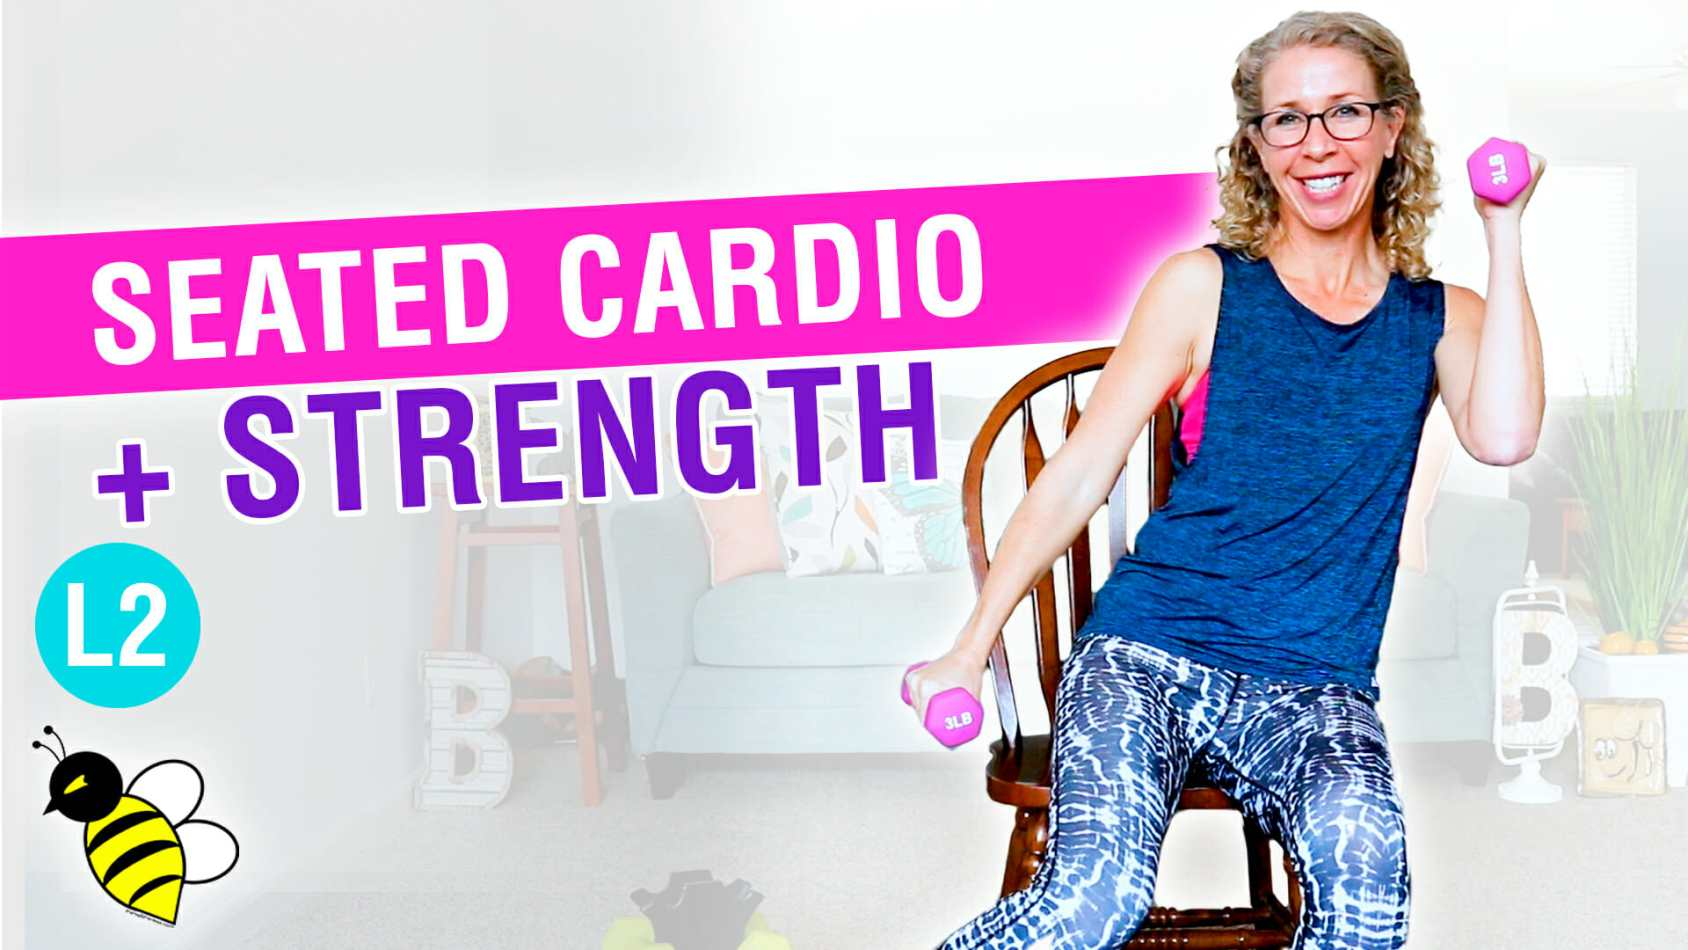 25 minute SEATED cardio + strength workout for TOTAL BODY fitness